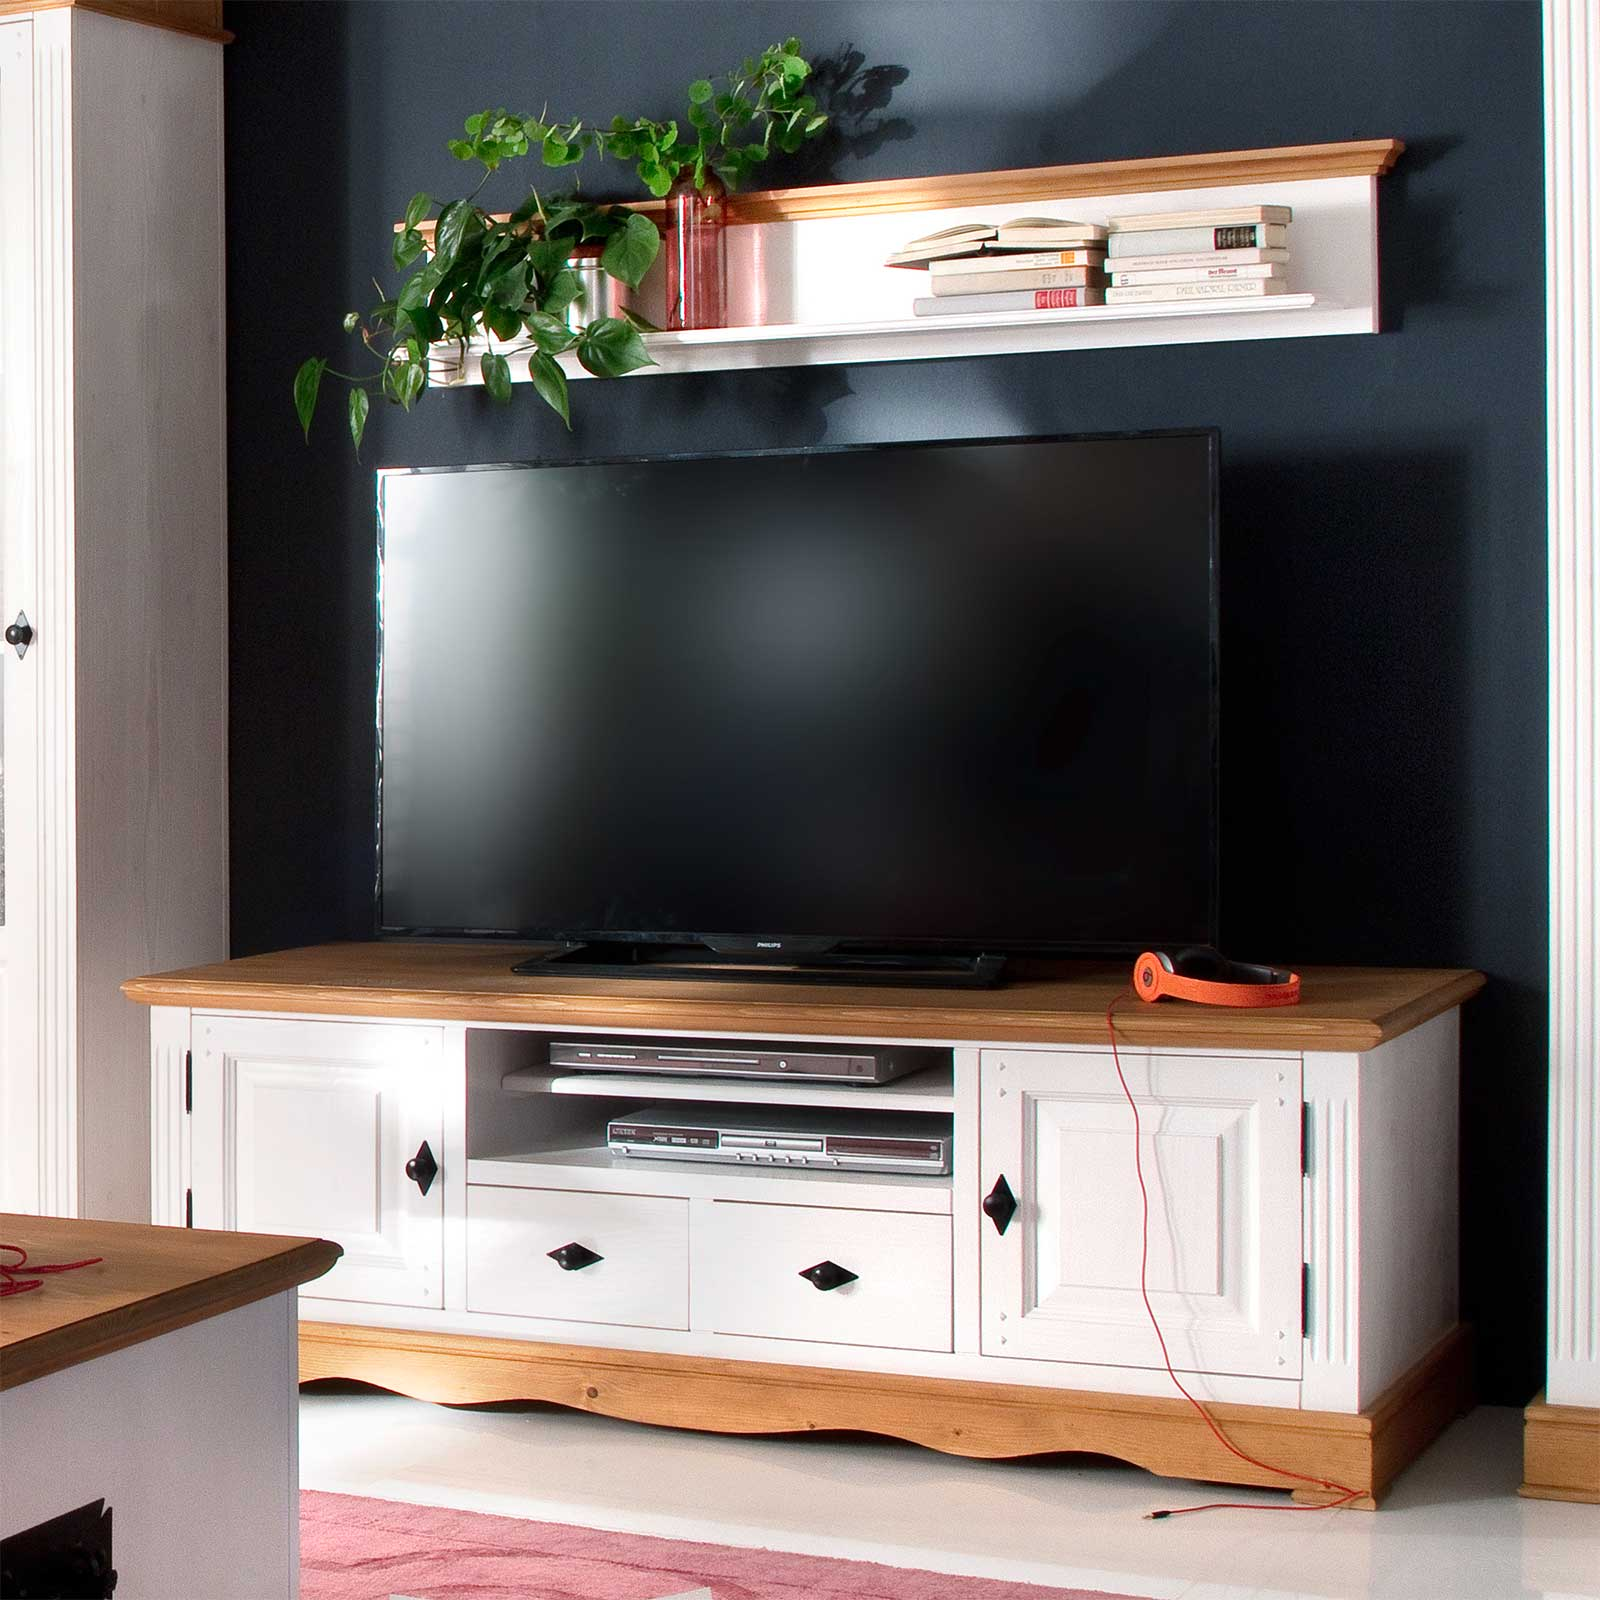 tv mbel 100 cm breit cm breit tv bank weiss lack bank in tv mobel weiss gebeizt with tv mbel. Black Bedroom Furniture Sets. Home Design Ideas